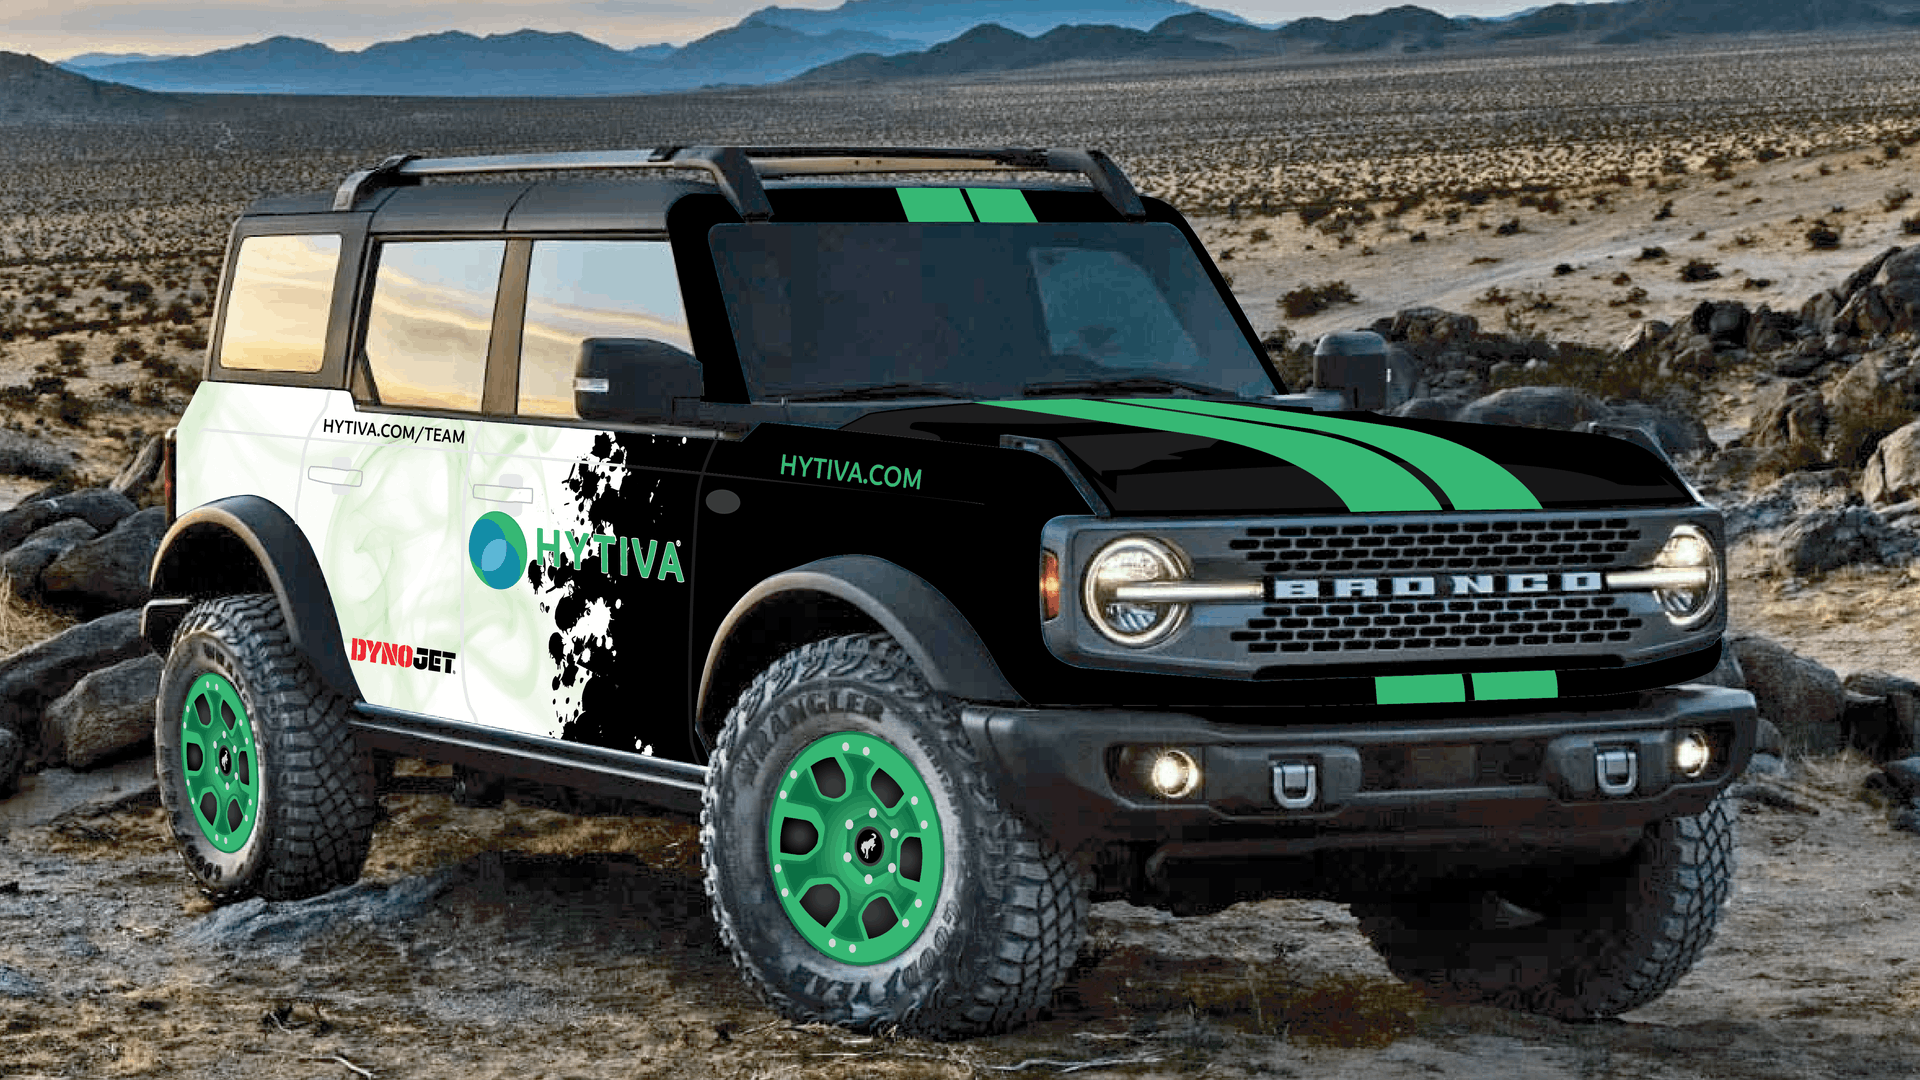 Ford Bronco Charity Build for Autism